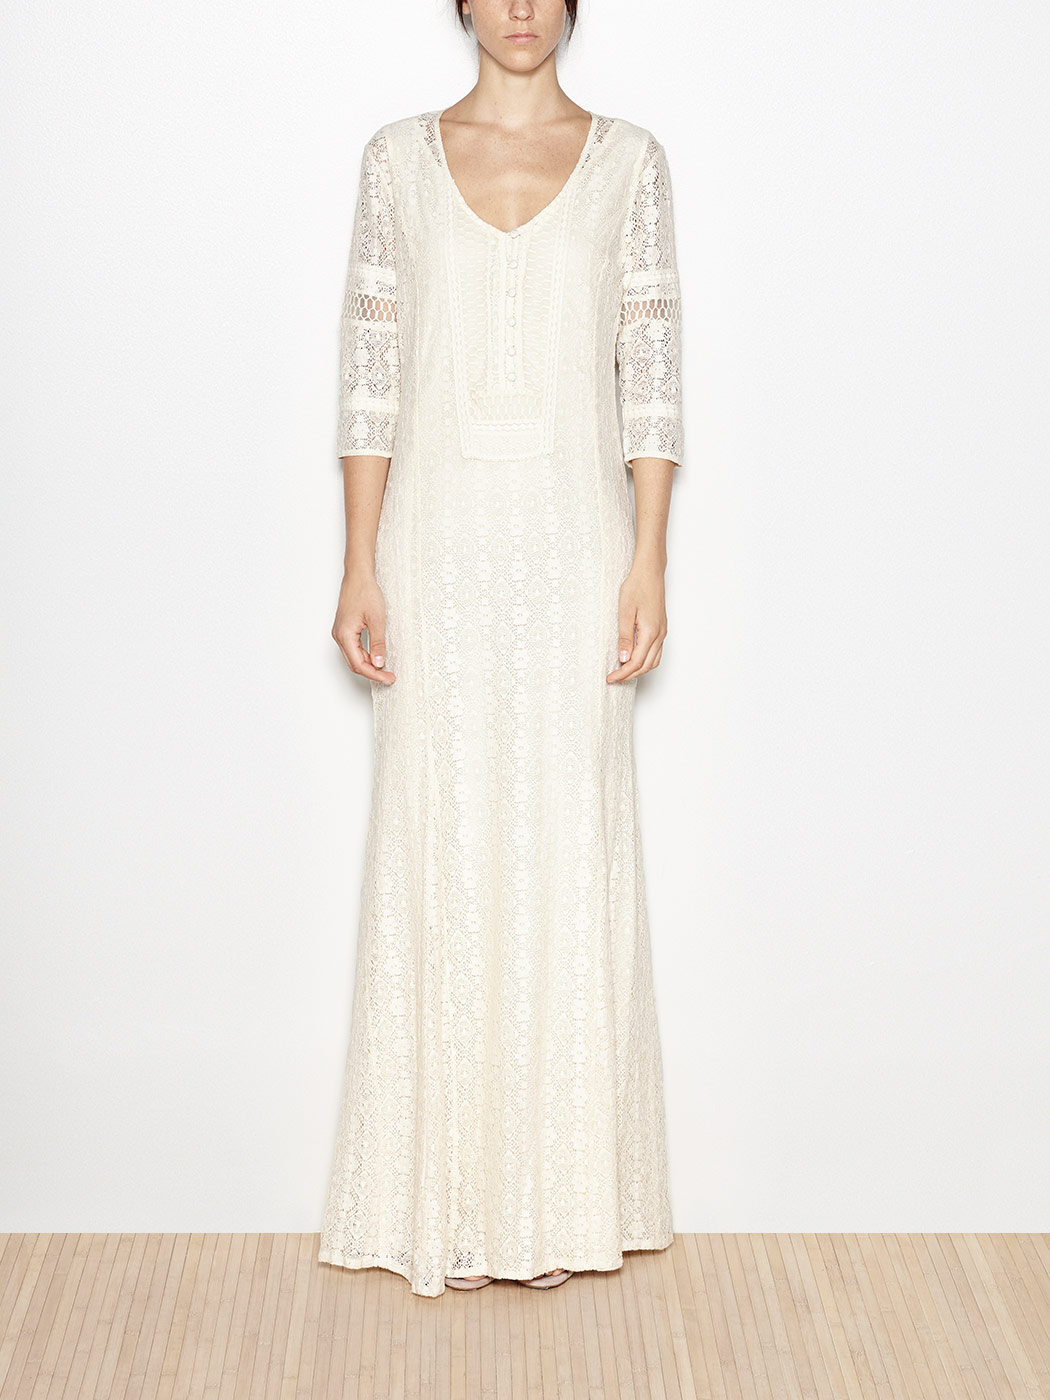 And openwork lace dress